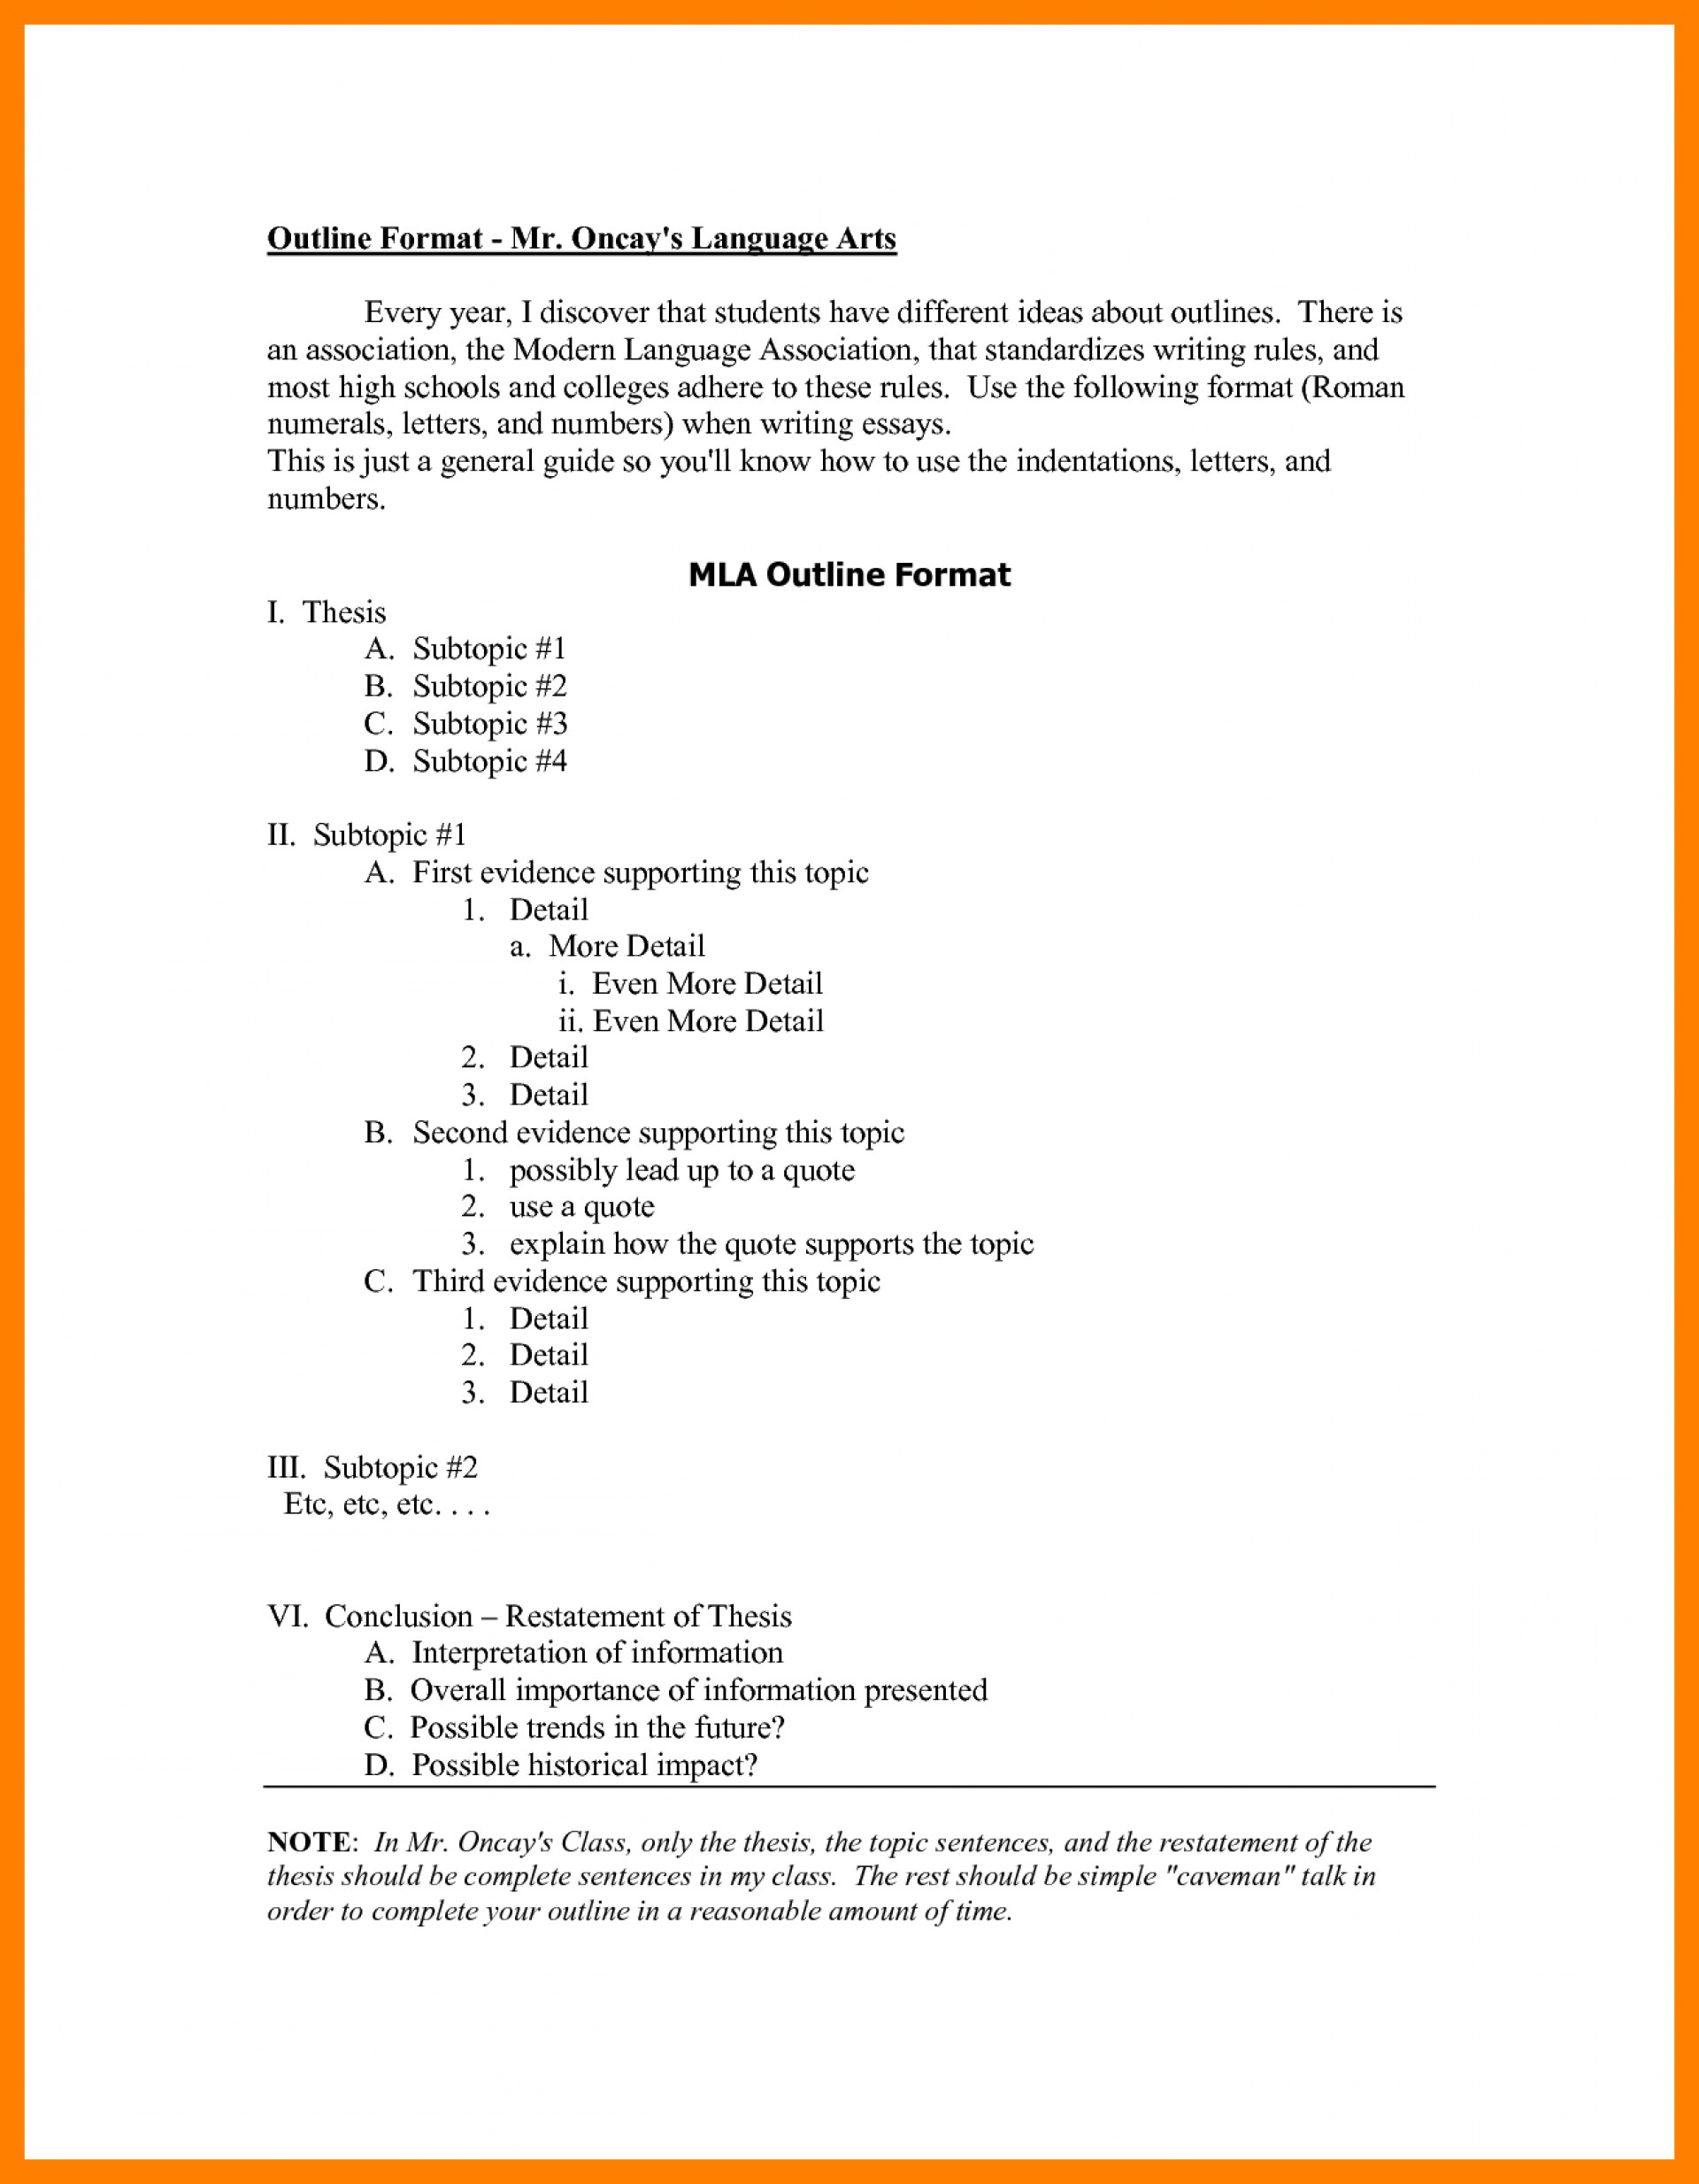 019 Research Paper High School Outline Format Mla Example Of Examples Stupendous Section Headings With Title Page 1920